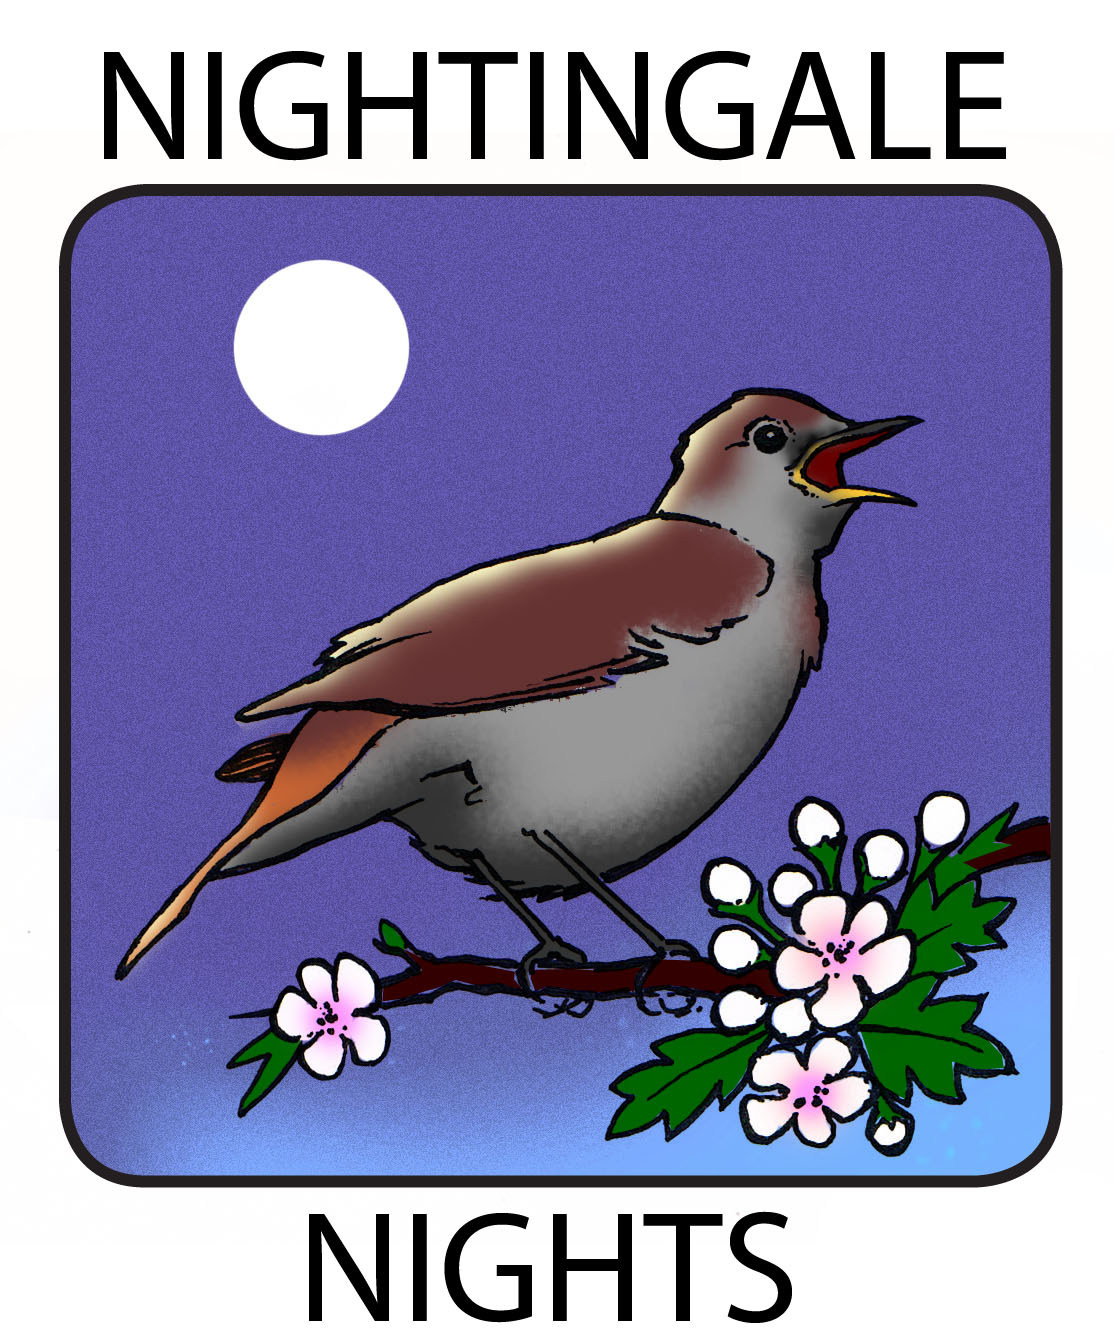 Nightingale Nights original